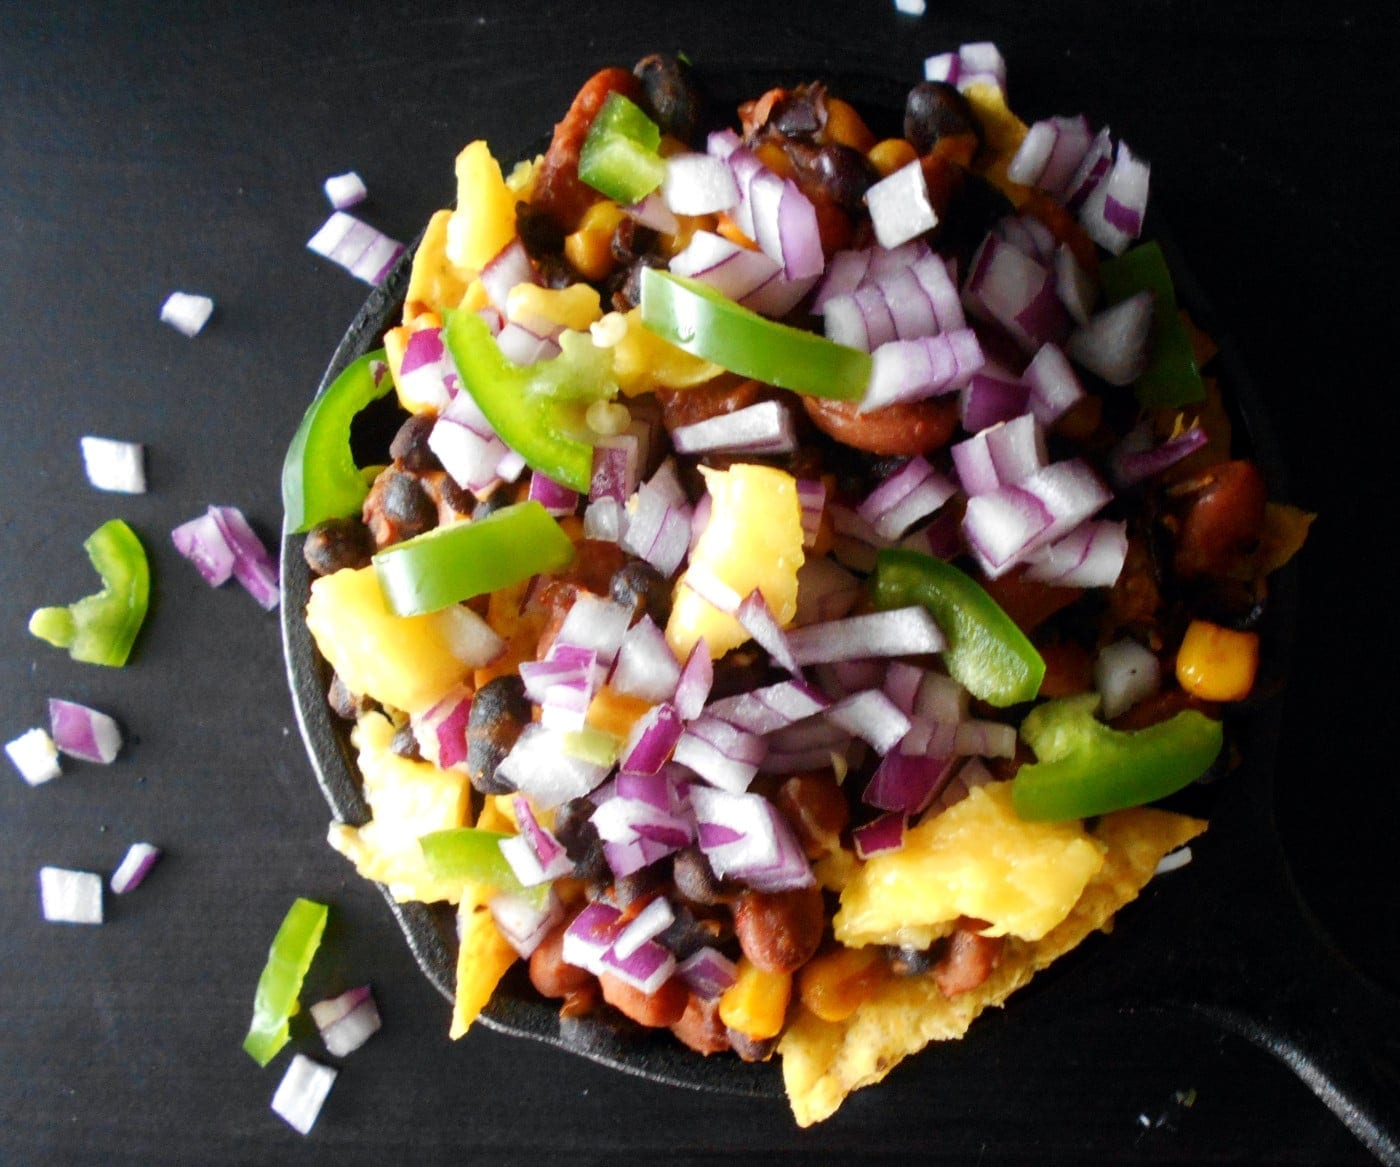 Vegetarian Nachos - Oooey-gooey, cheesy goodness. made with beans, cheese and mangos. Comfort food